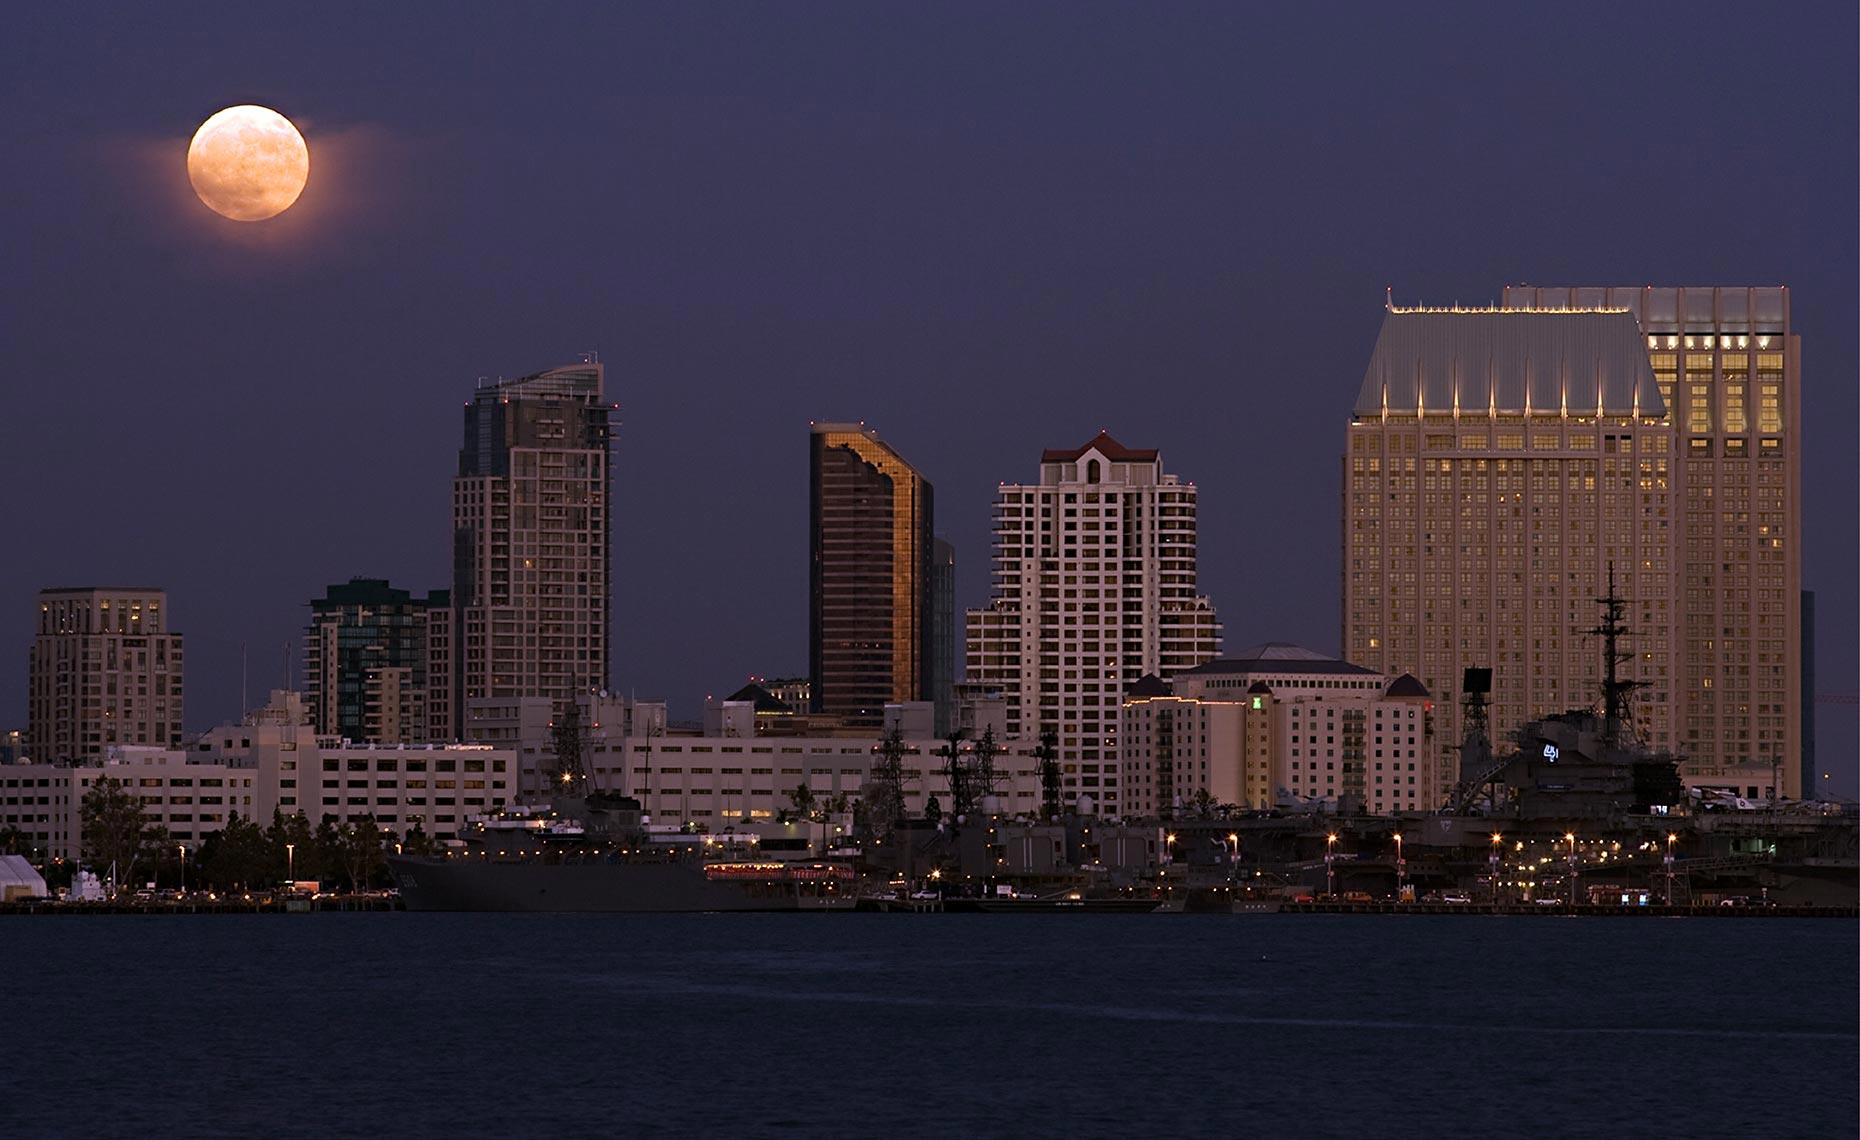 17_Moonrise_Downtown_San_Diego_California_Environment_Landscape_Chris_Wellhausen_Photography.JPG